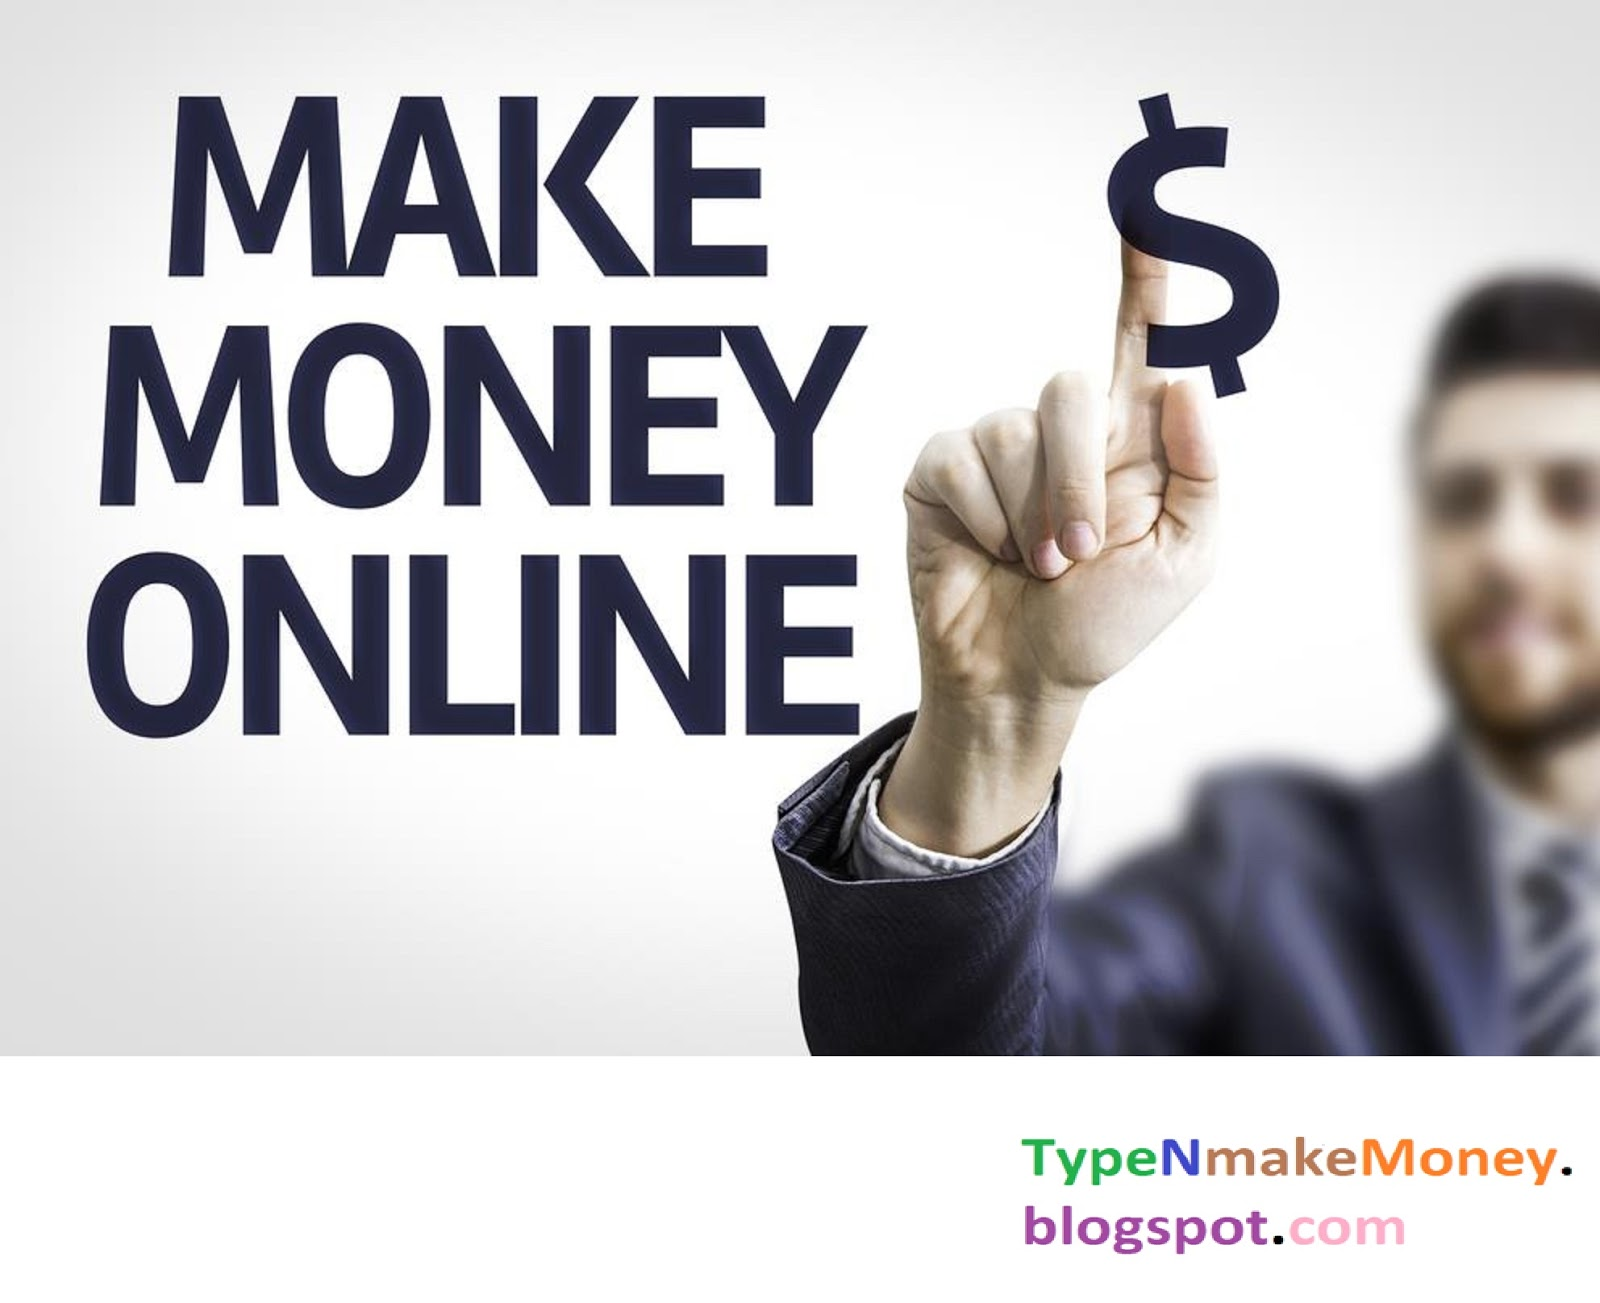 earnonlinemoney you can easily make money online online make money online jpg